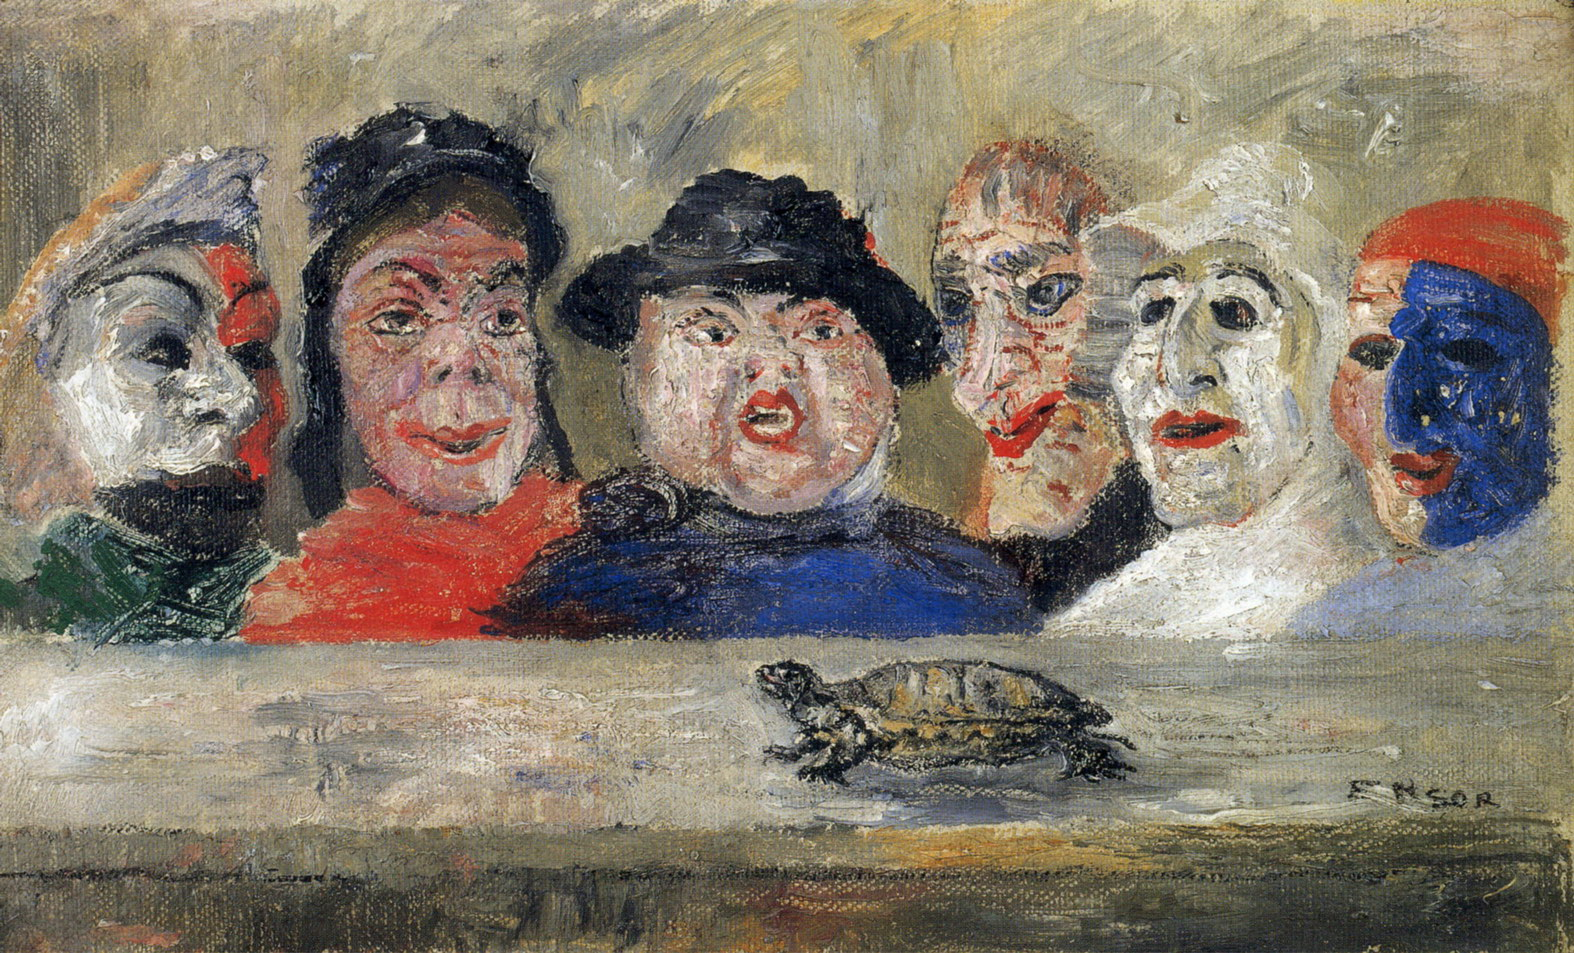 1894-james-ensor-masks-looking-at-a-tortoise.jpg